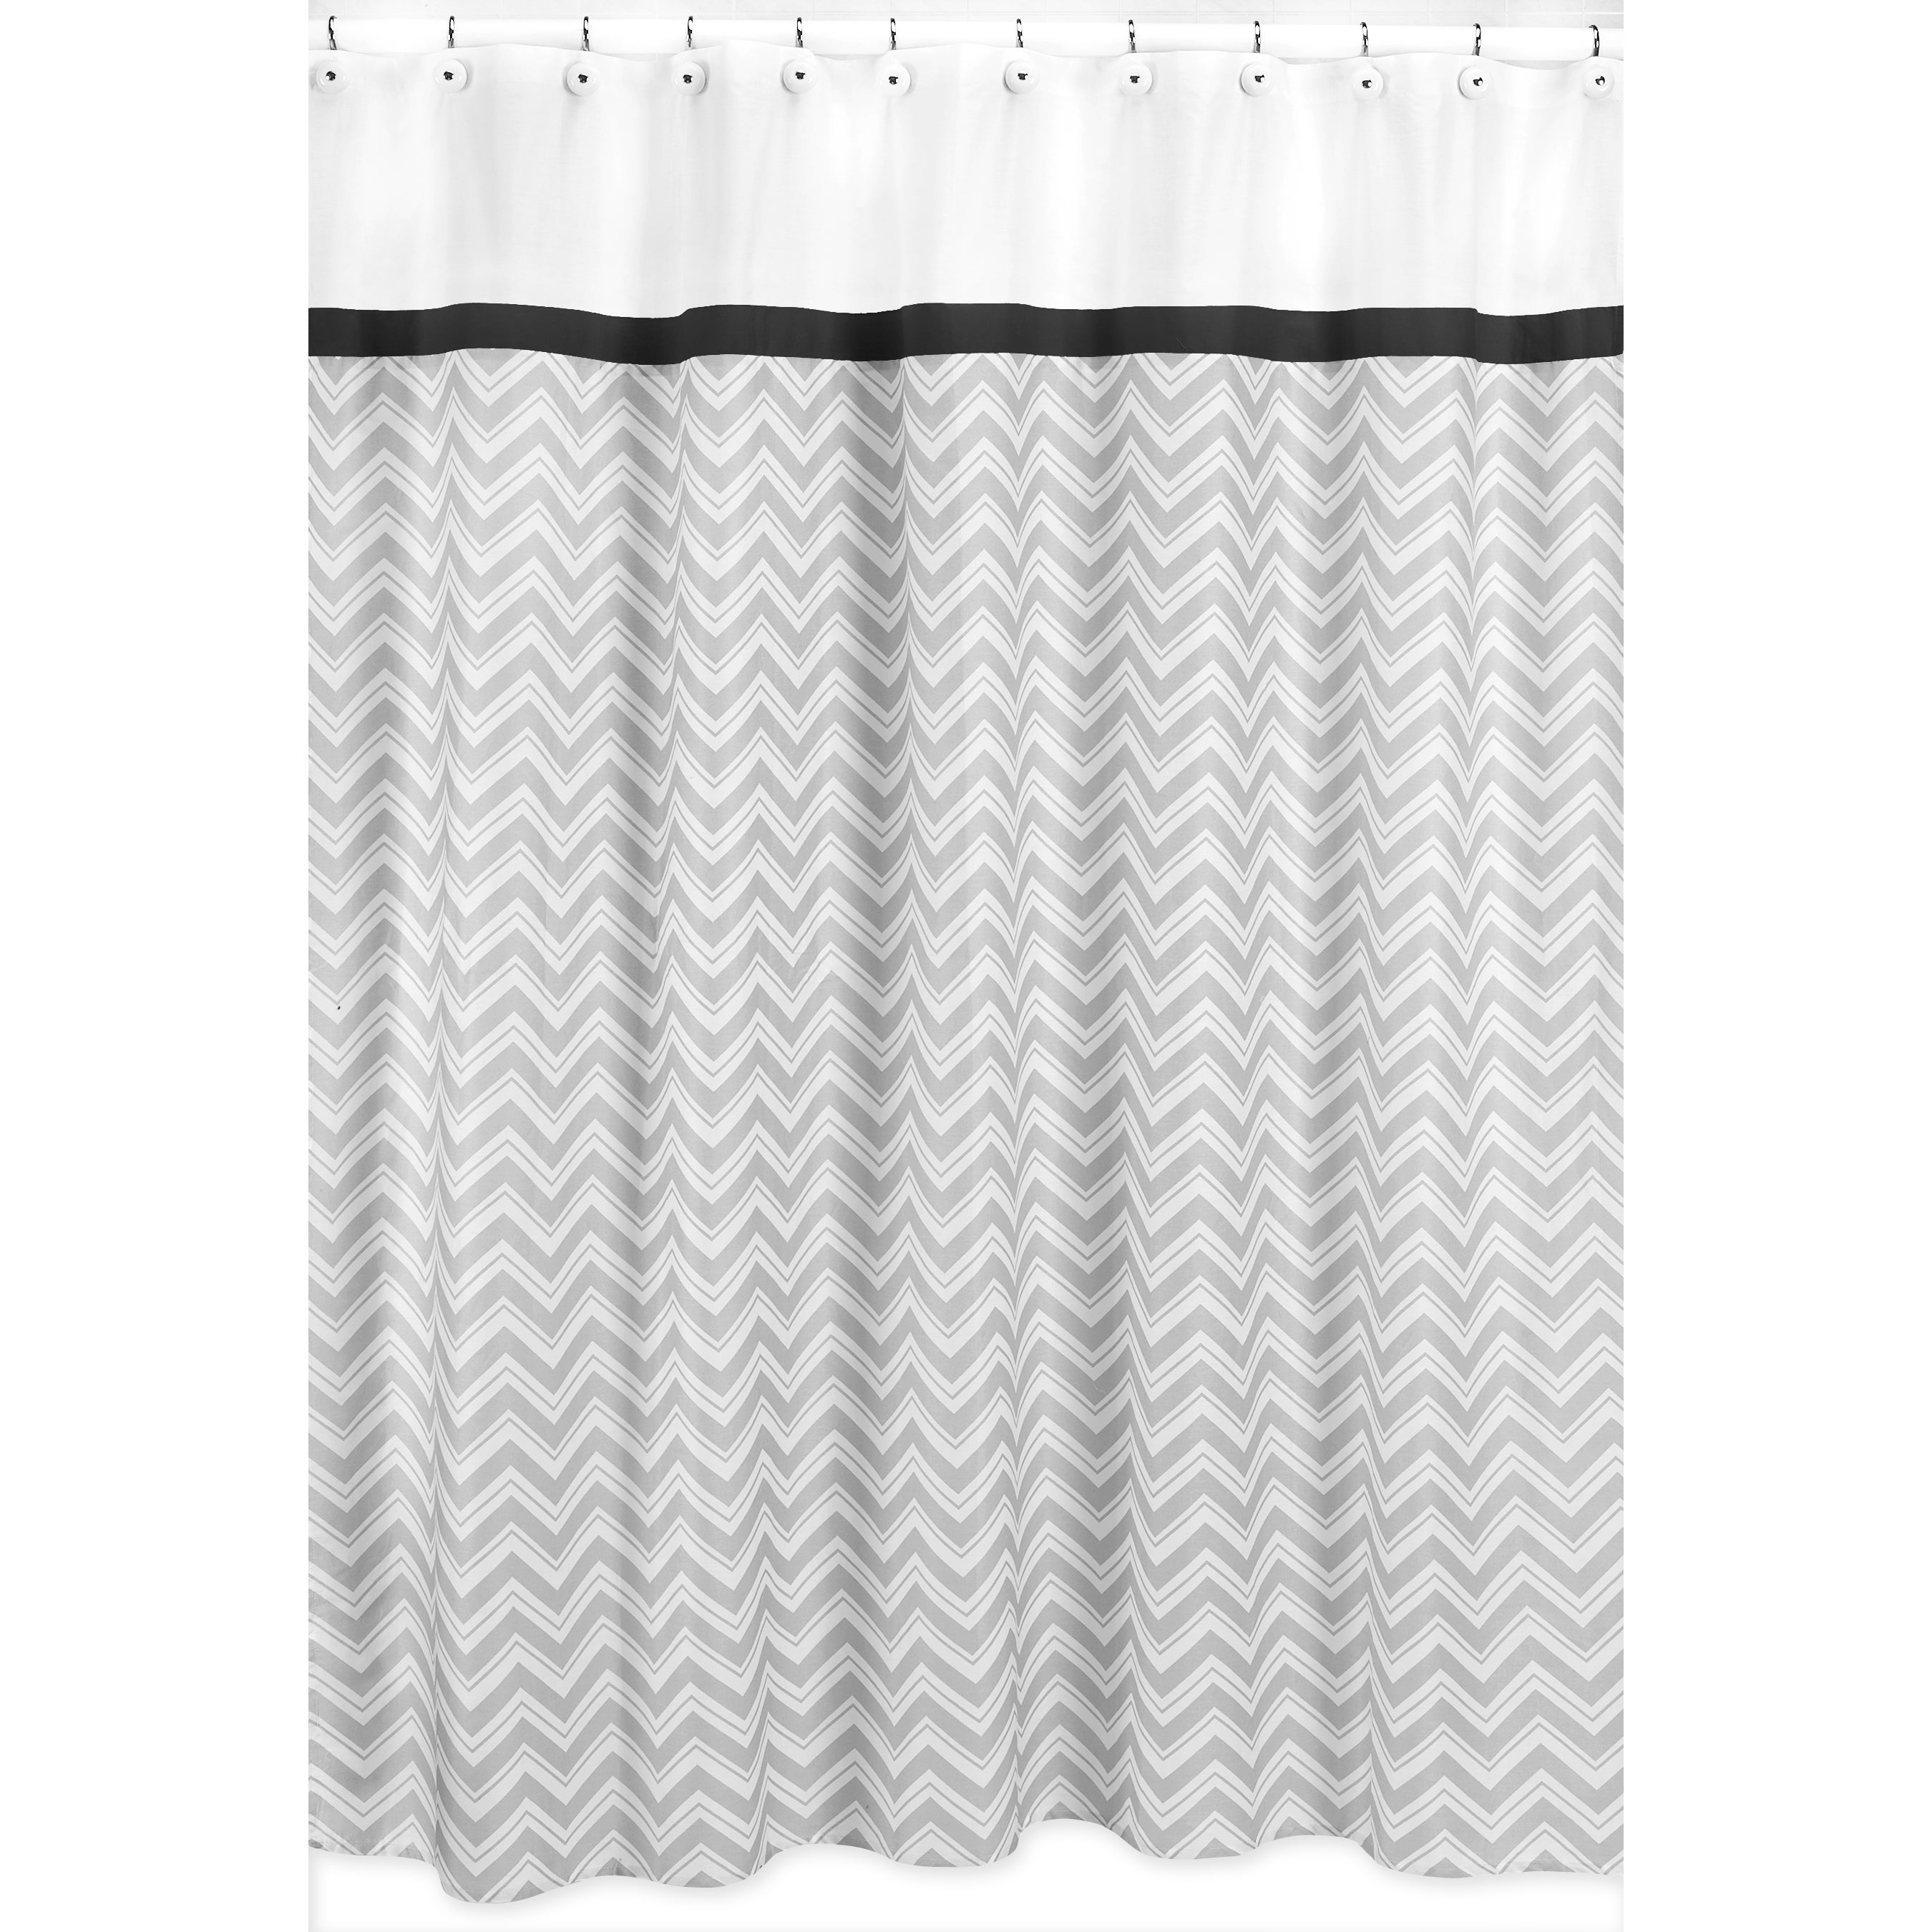 Buy Decorative Shower Curtains Online at Overstock.com   Our Best ...